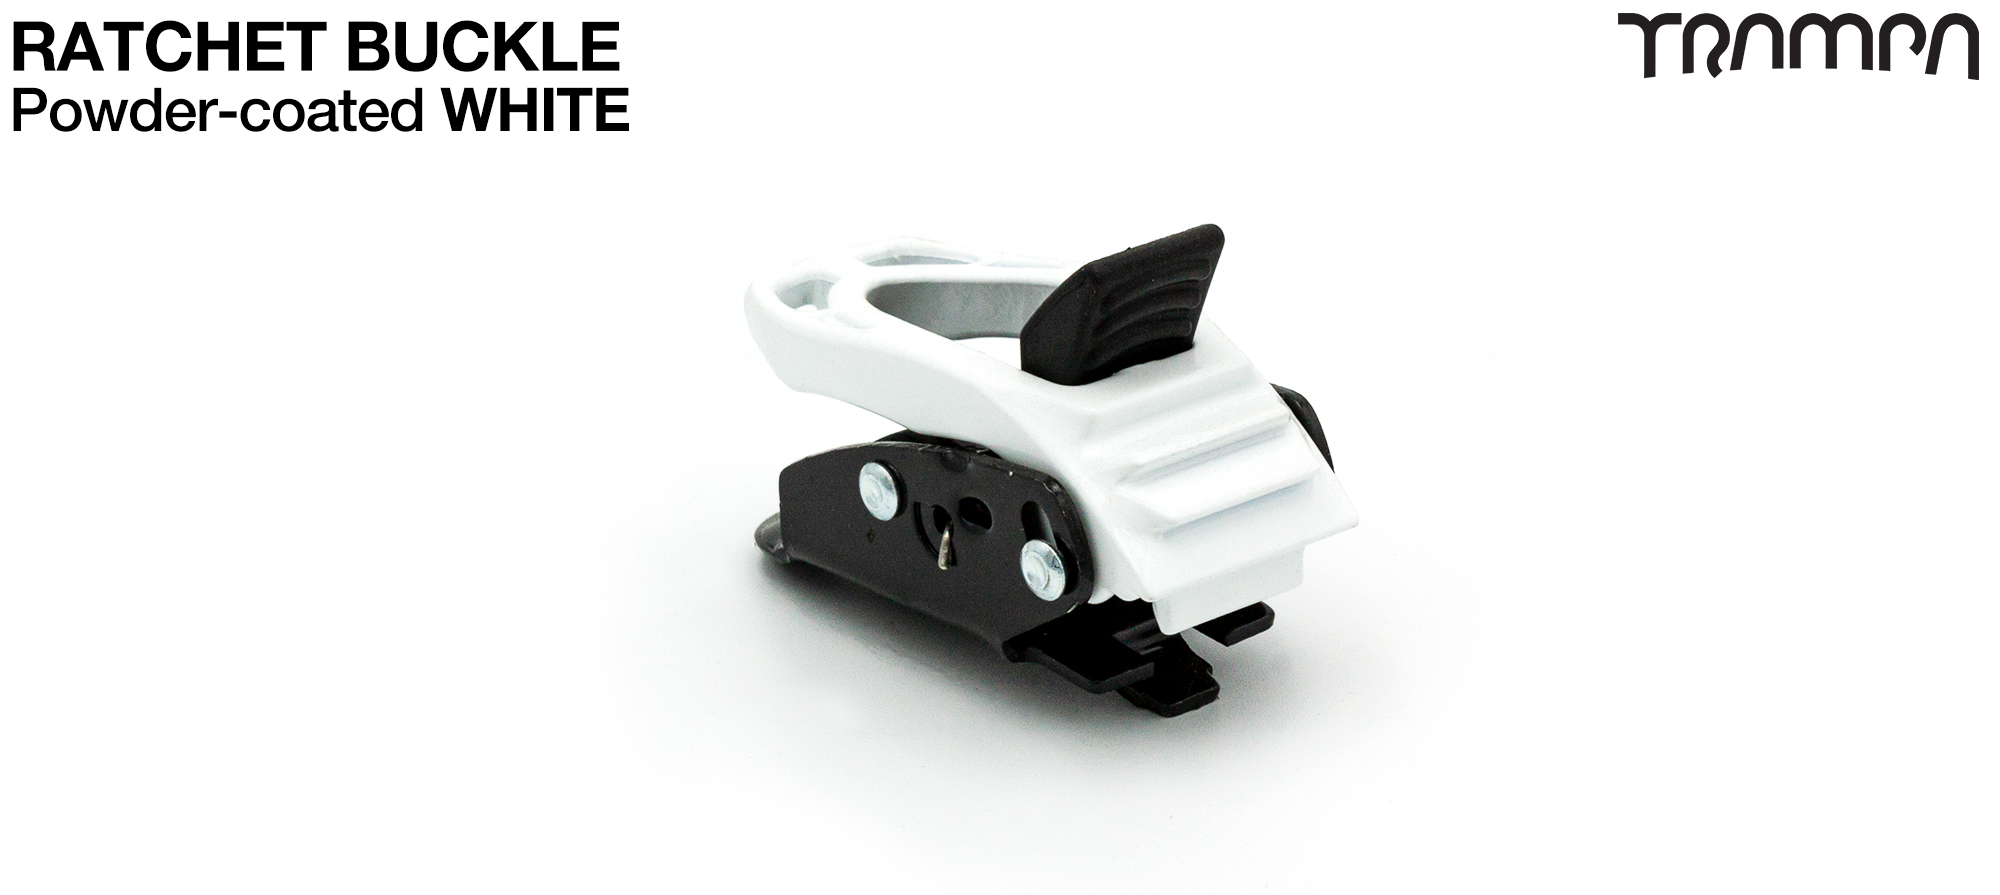 WHITE Powder Coated Ratchet Buckle